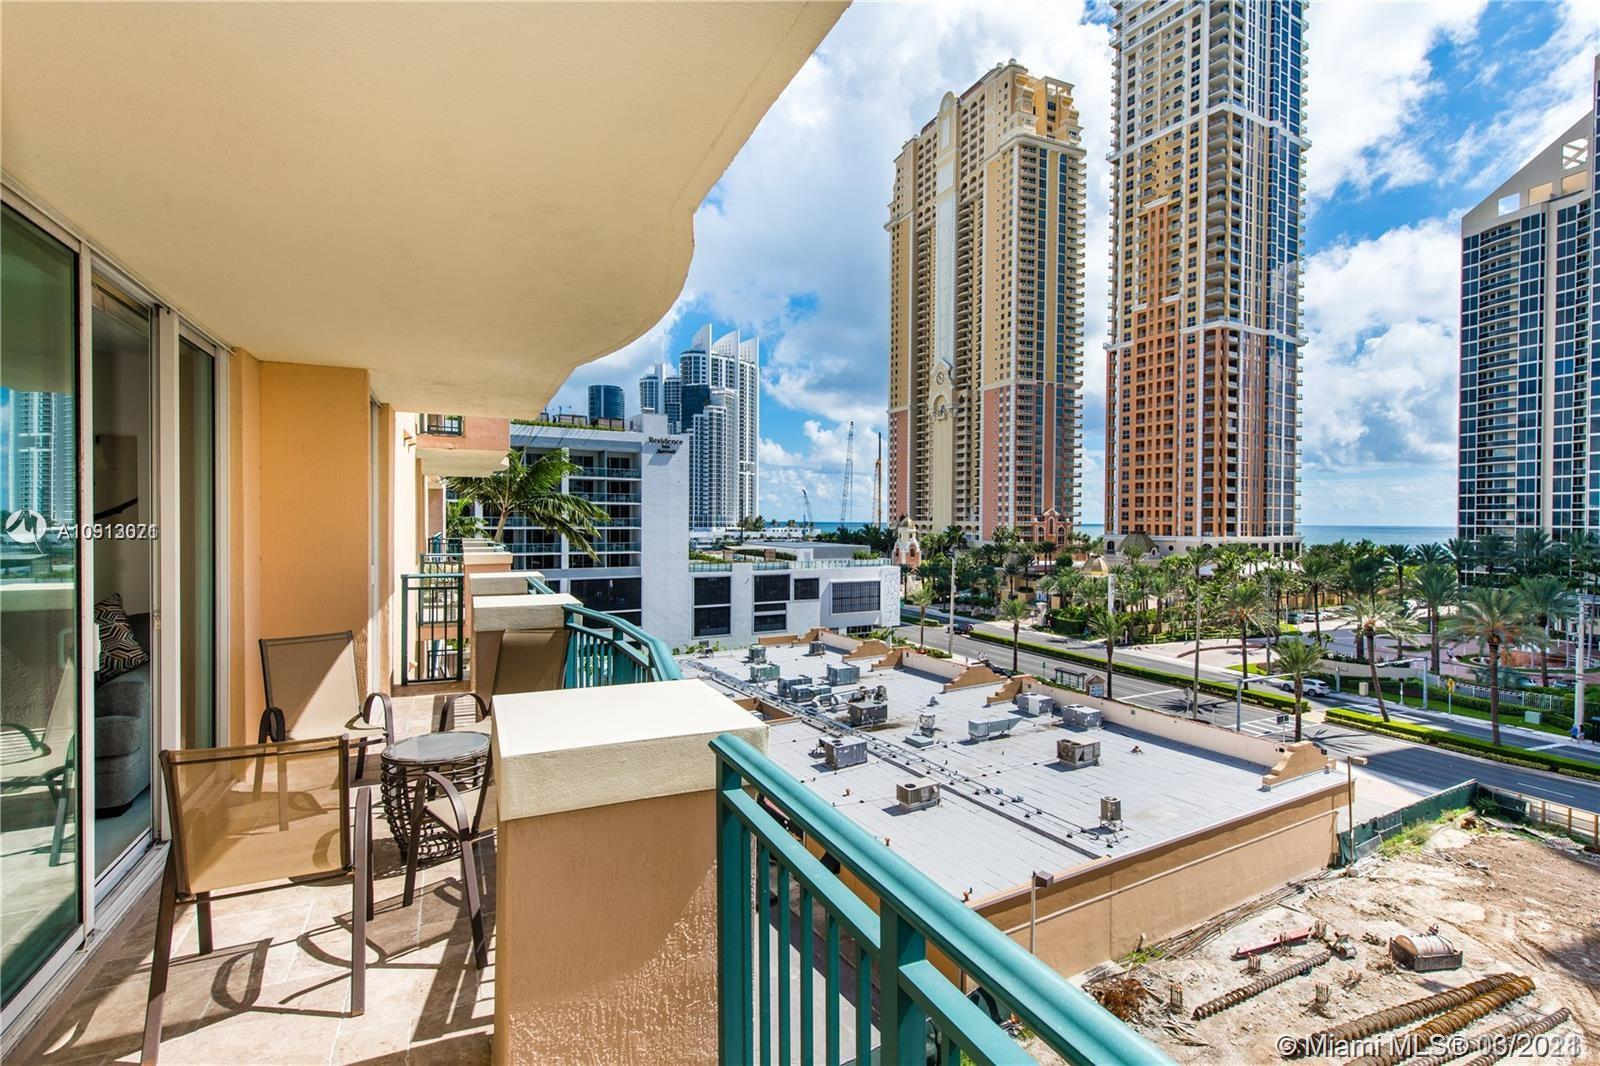 King David #703 - 17555 Atlantic Blvd #703, Sunny Isles Beach, FL 33160